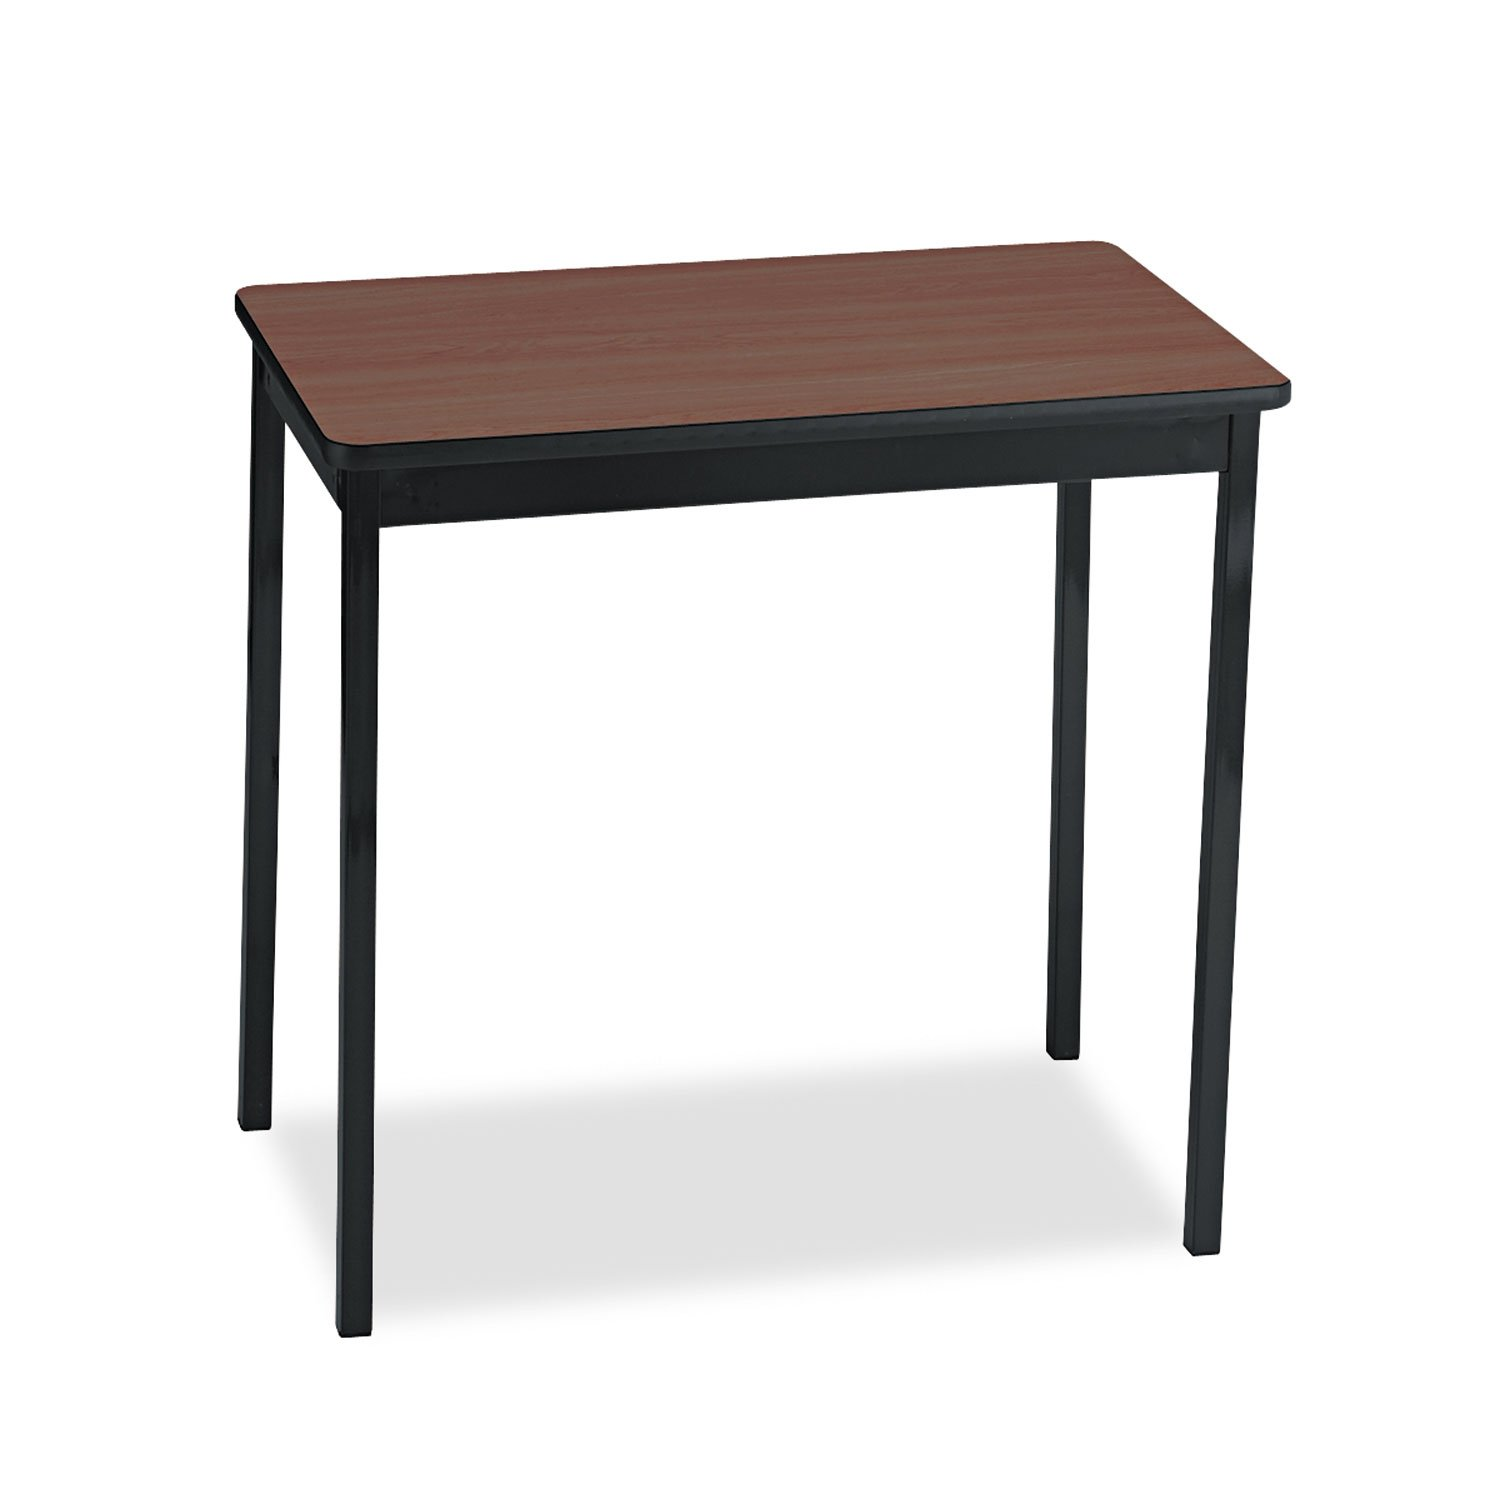 Barricks UT183030WA Utility Table, Rectangular, 30w x 18d x 30h, Walnut/Black